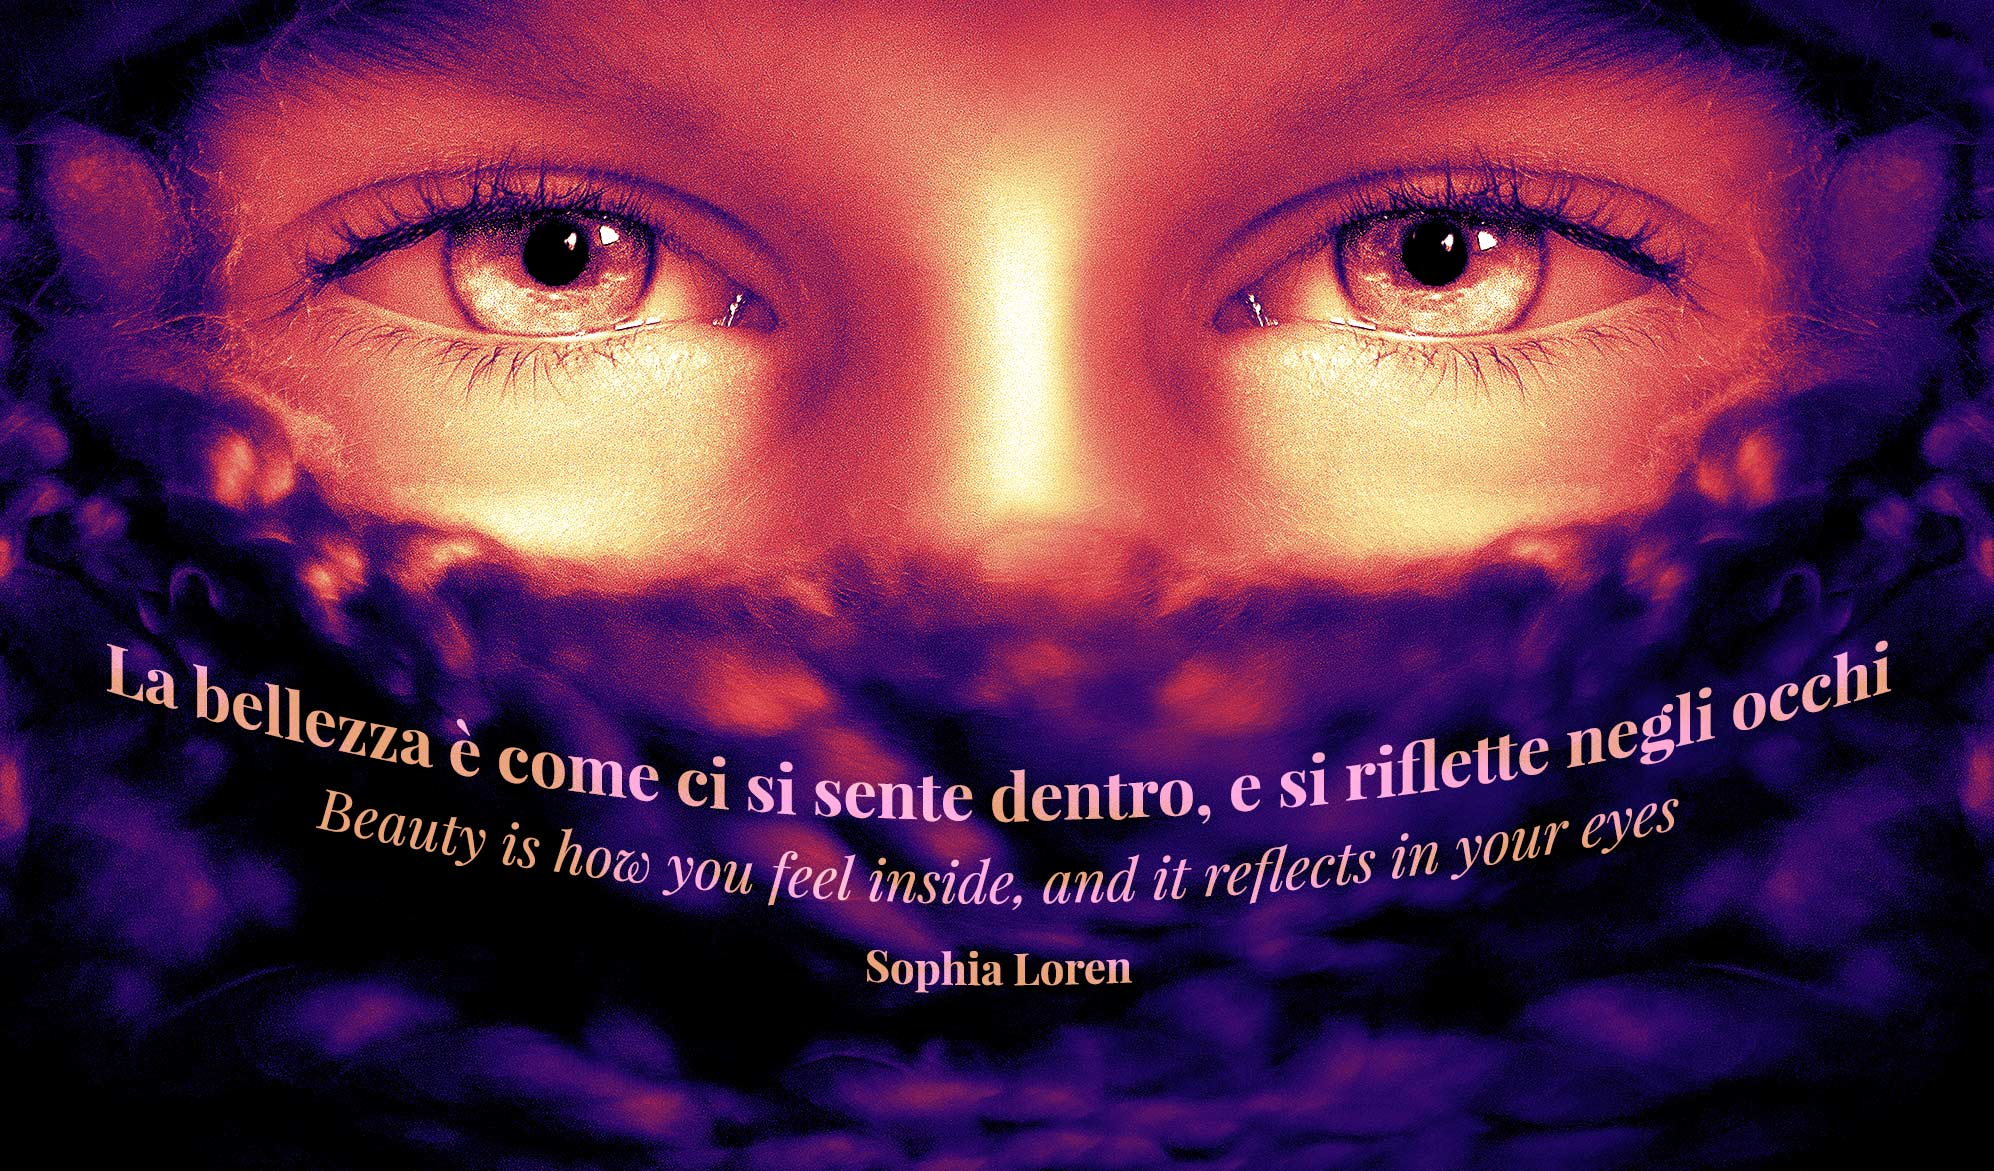 daily inspirational quote imahe: close up on a person's eyes, bathed in purple and orange light